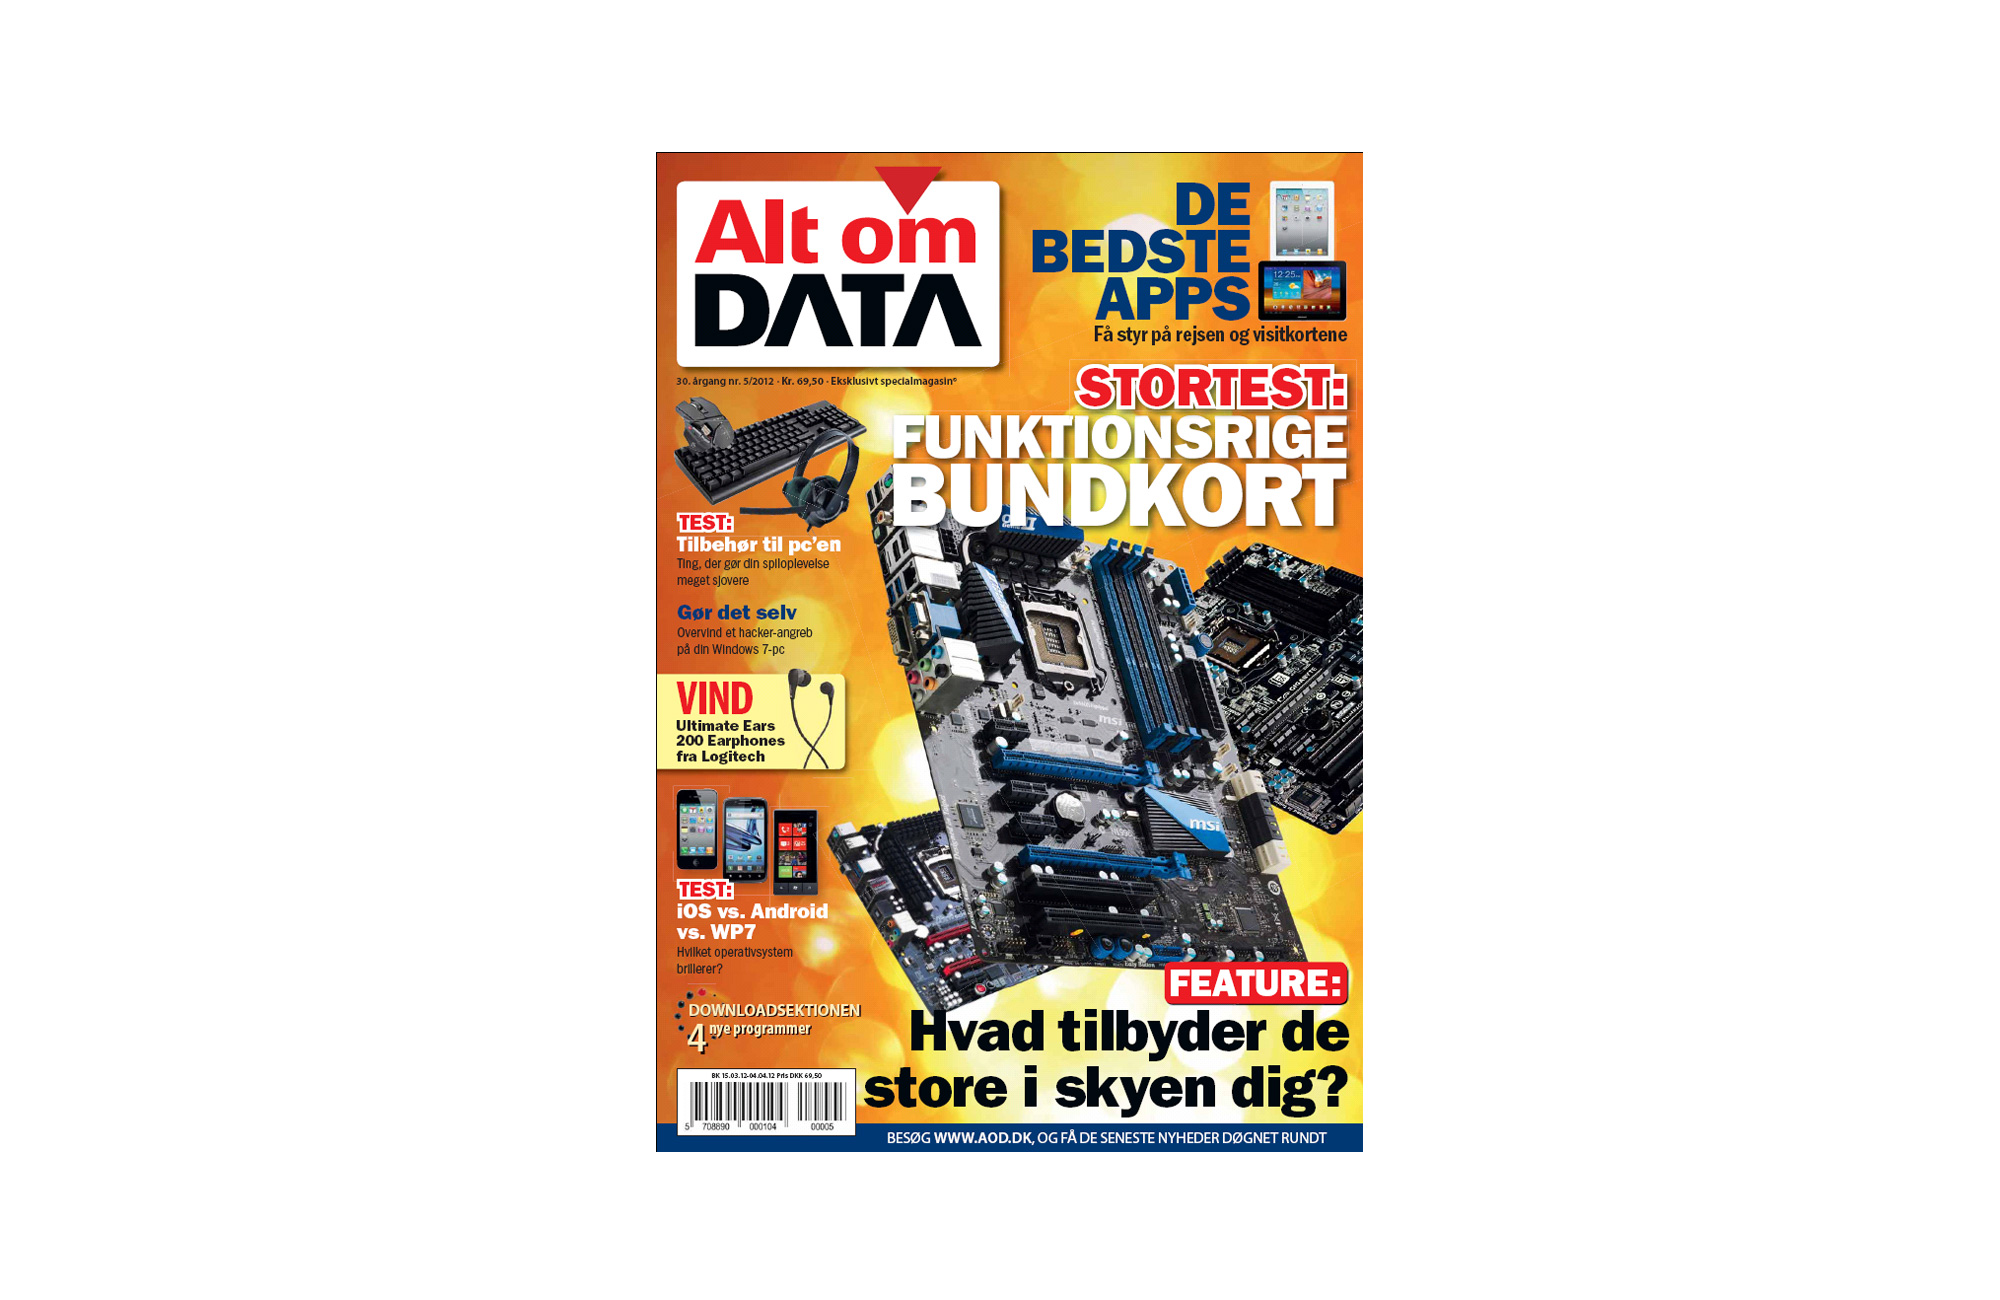 Alt om DATA tester bundkort